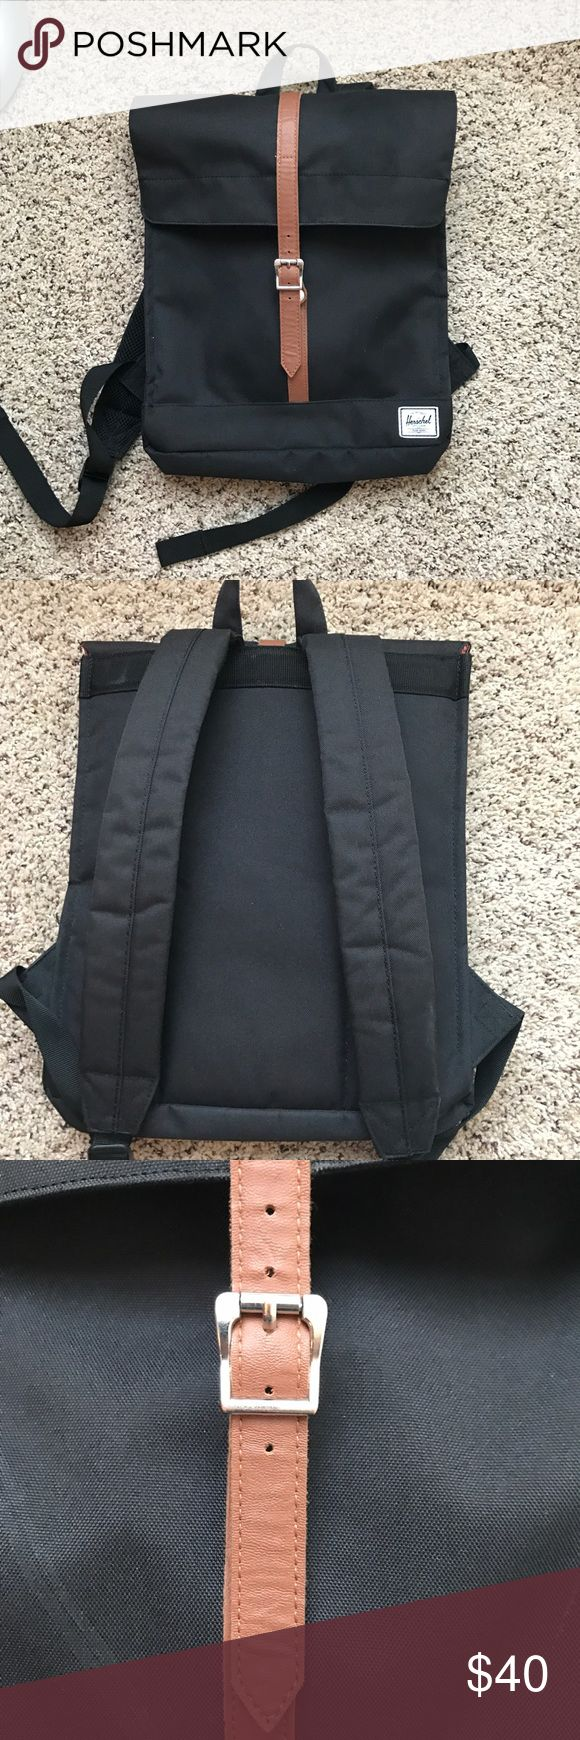 Herschel City Backpack In great condition. There is some sign of wear on the buckling strap, but otherwise it is in near new condition. Herschel Supply Company Bags Backpacks